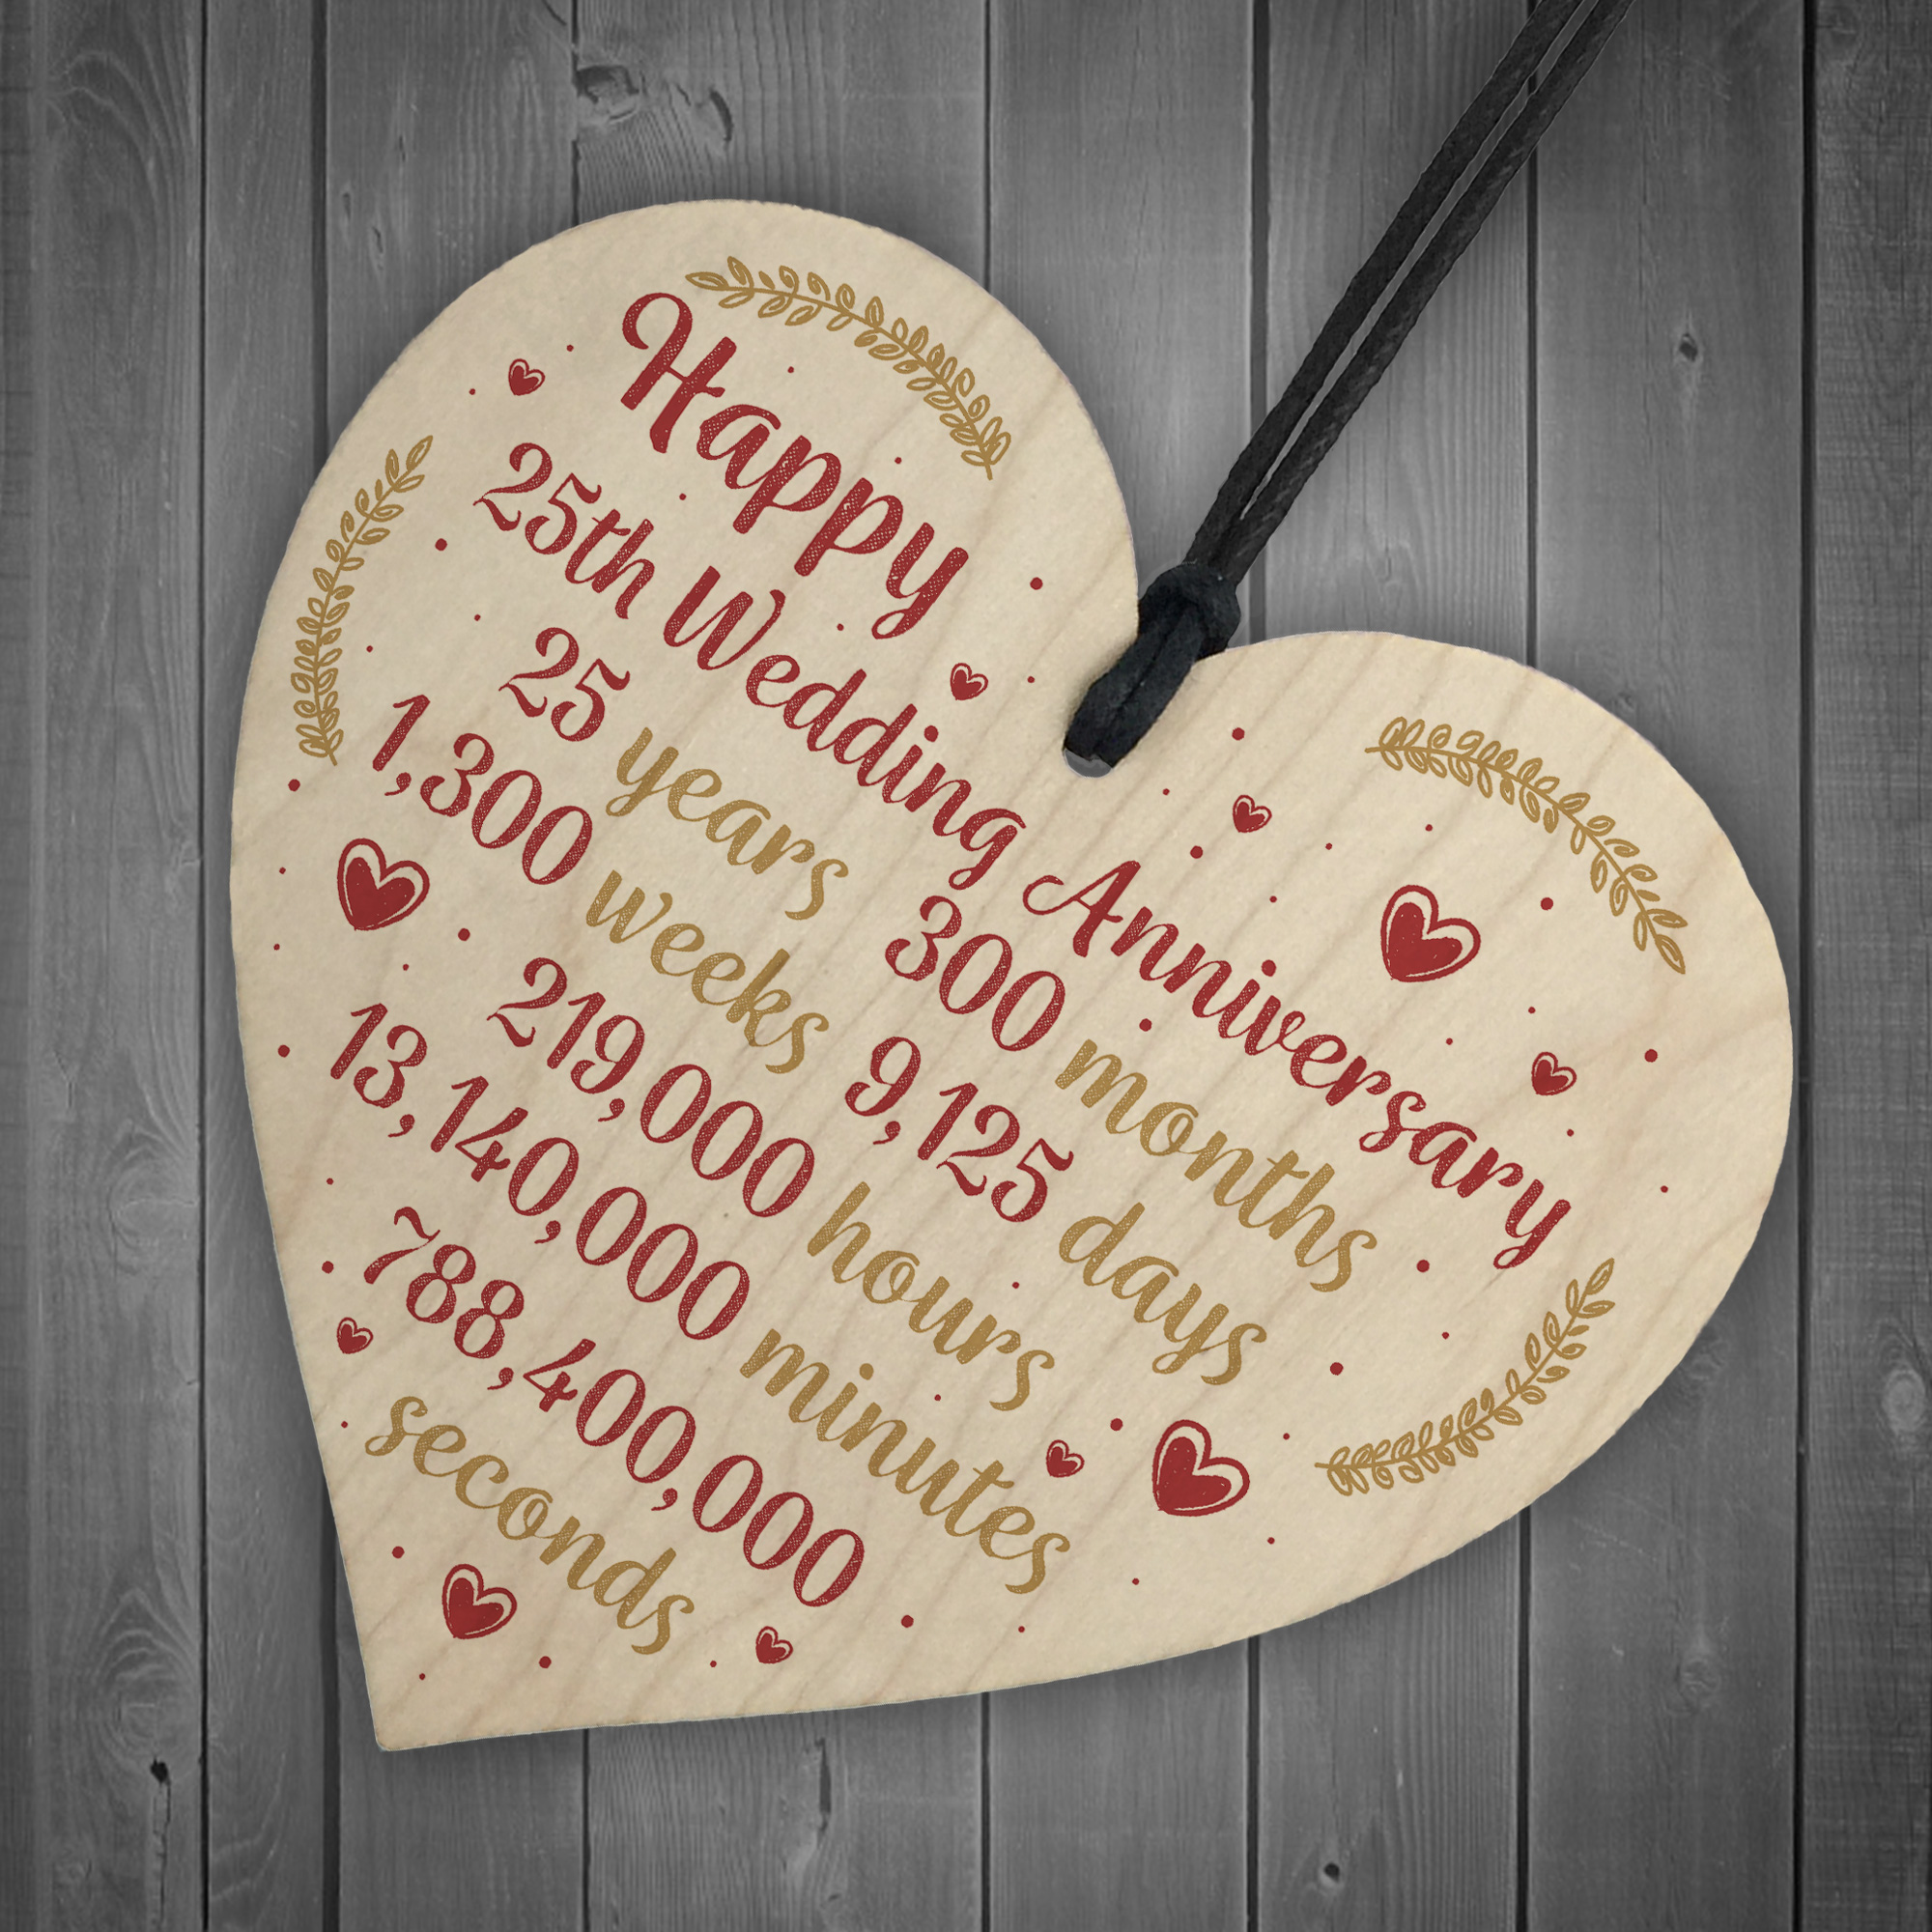 25th Wedding Anniversary Gifts For Wife: Happy 25th Wedding Anniversary Card Gift Heart Twenty Five